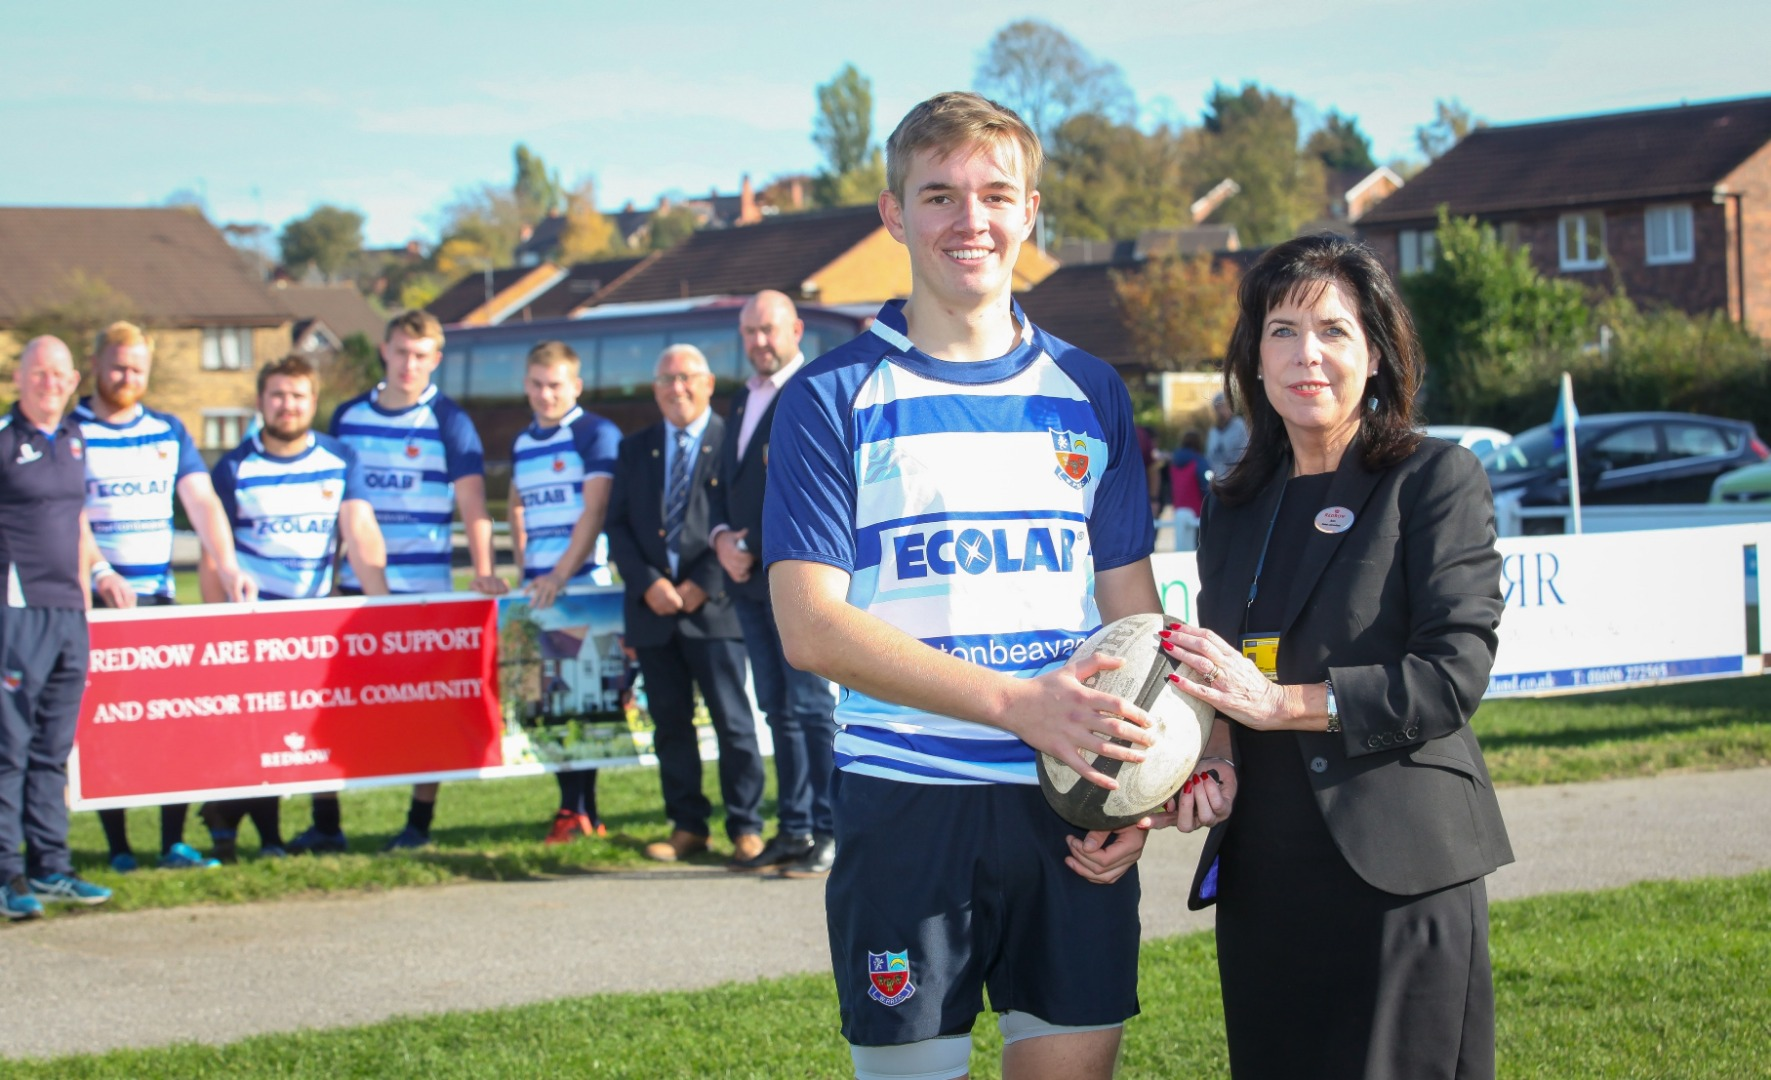 RUGBY CLUB TEAMS UP WITH REDROW TO TACKLE STORAGE SOLUTION